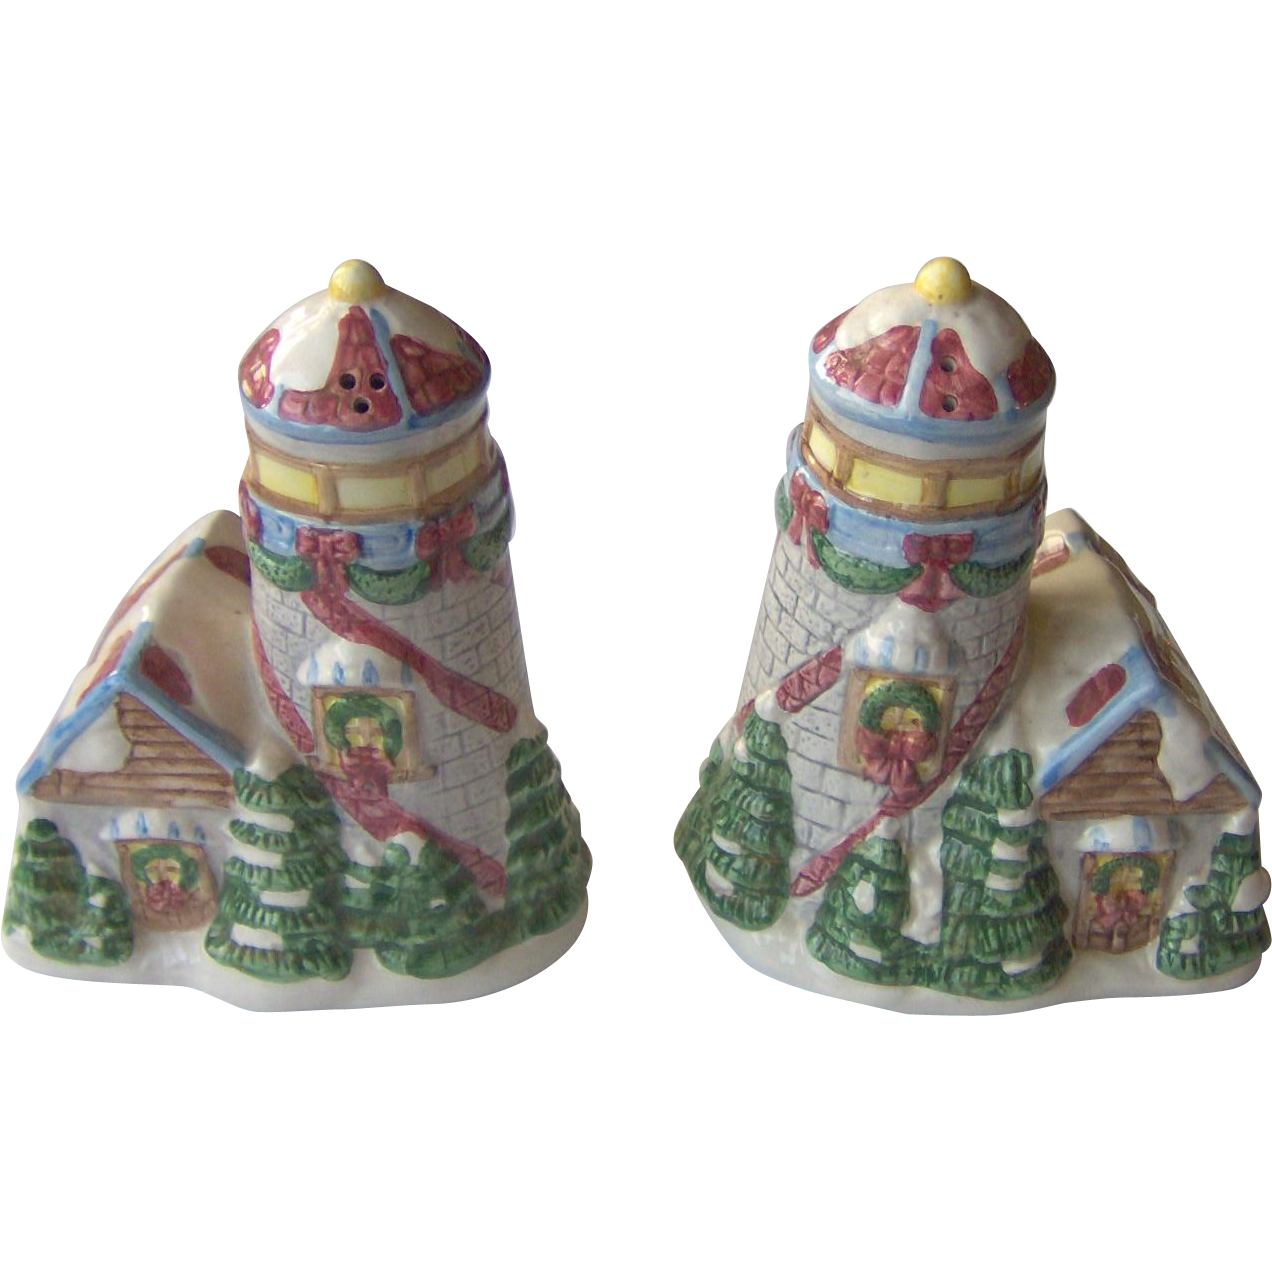 Vintage Winter Village scene salt and pepper shakers